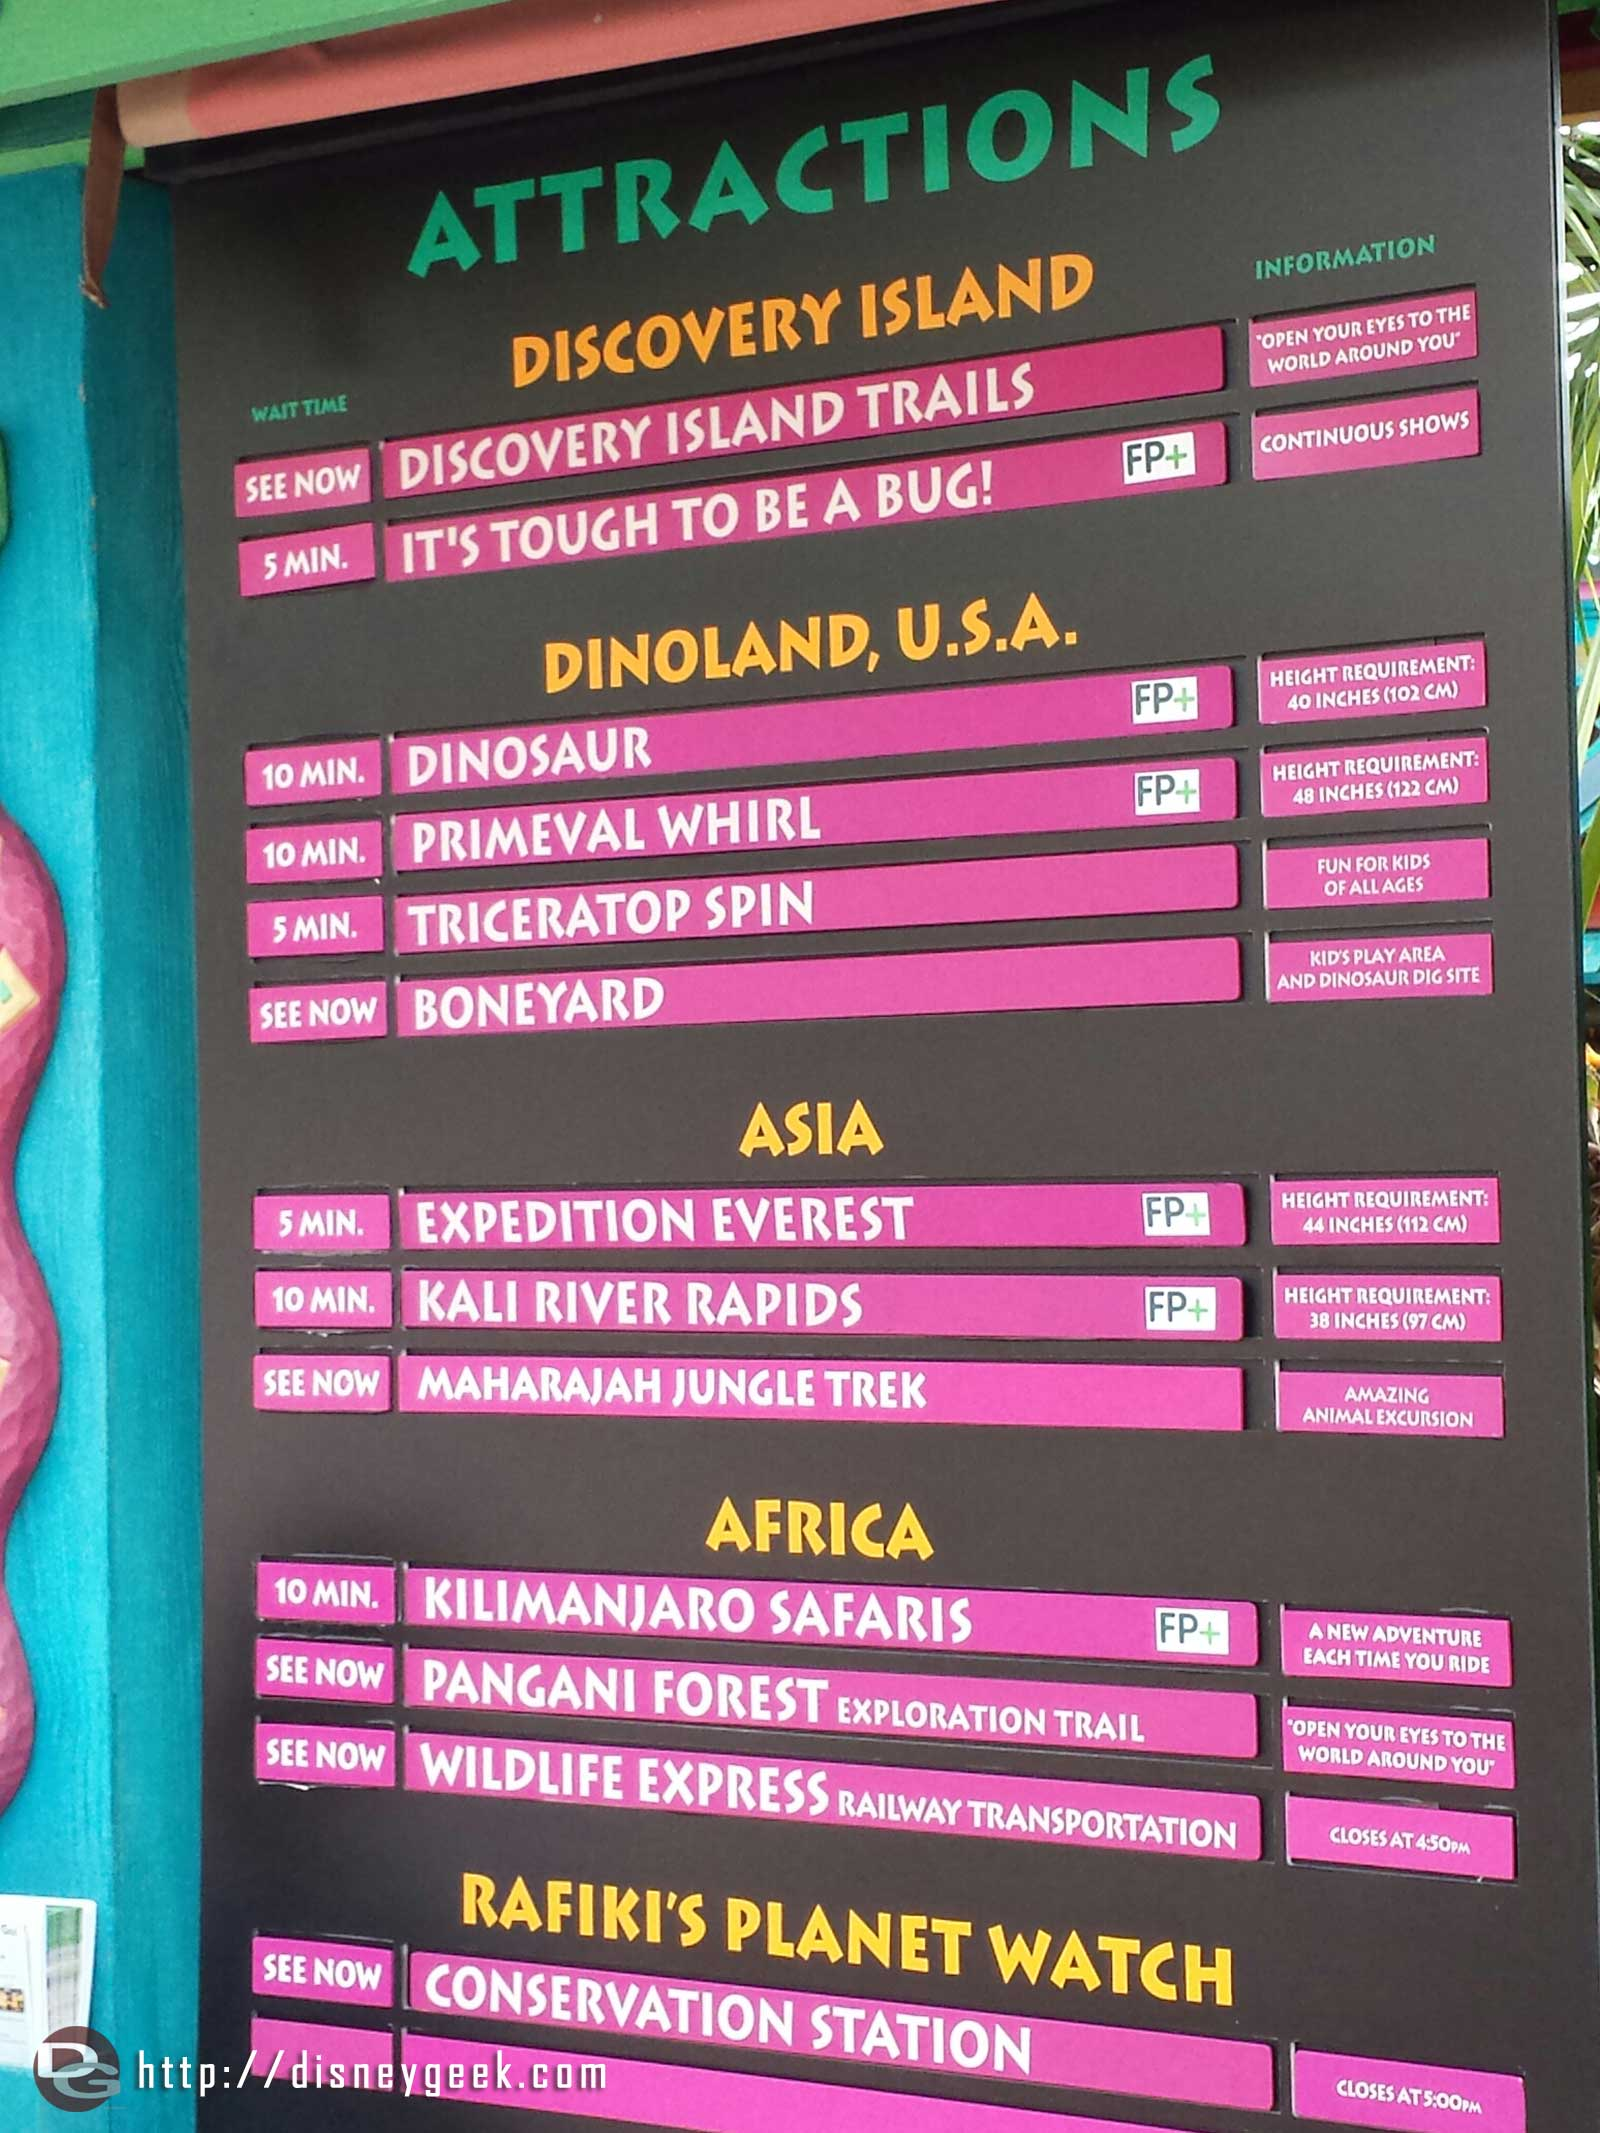 Wait times as of 10:20am – Disney's Animal Kingdom